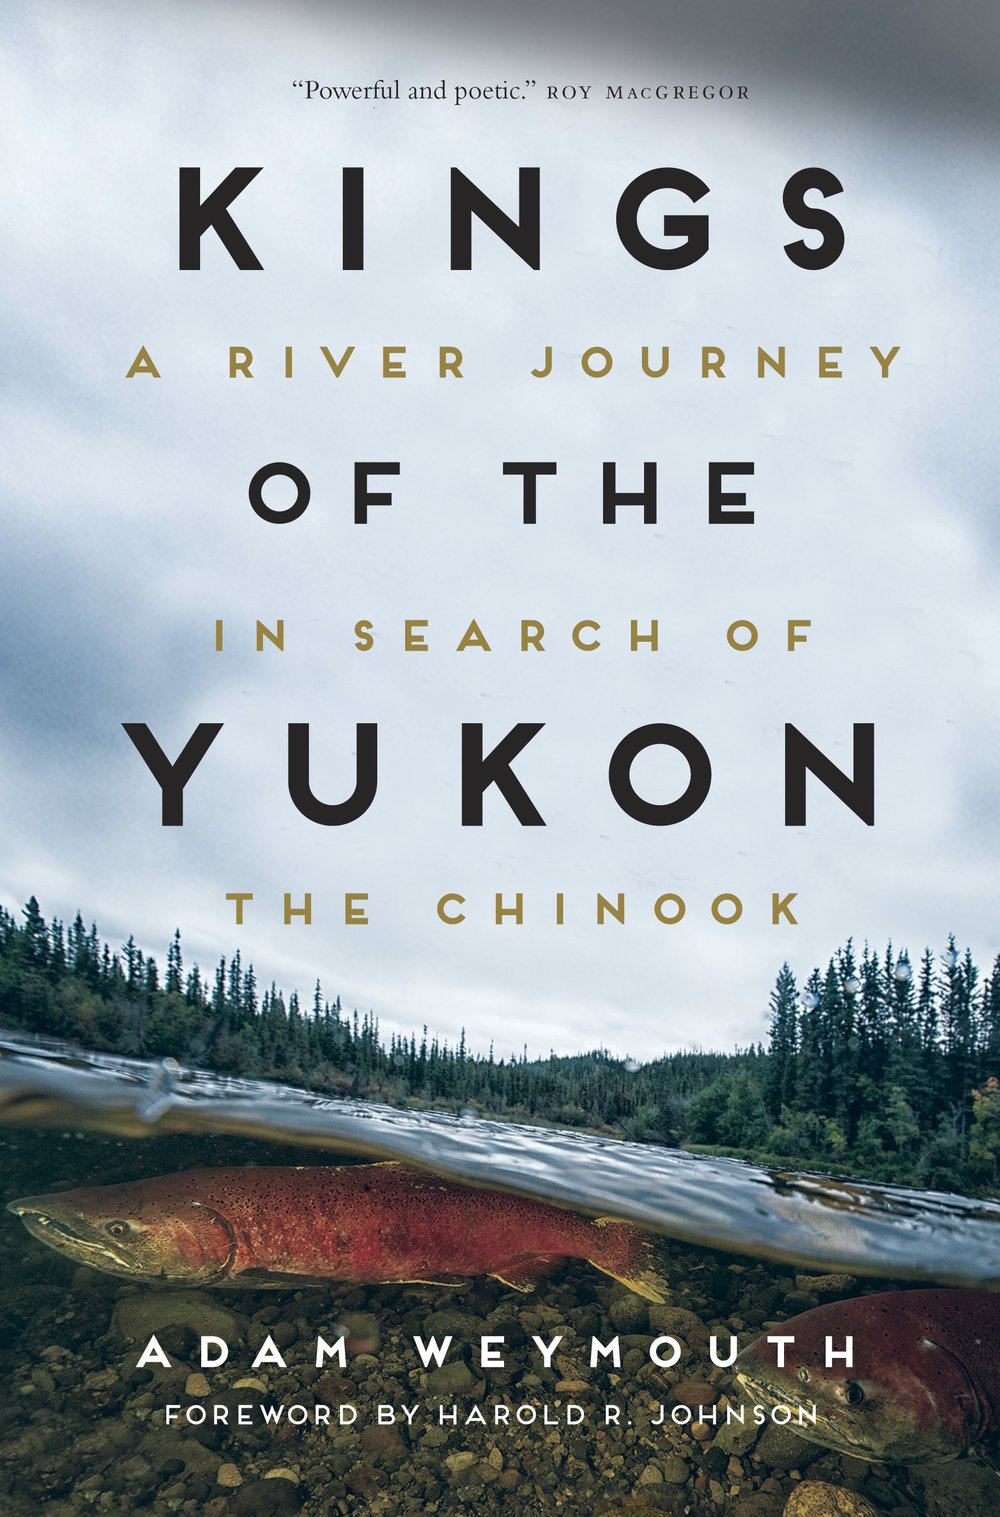 Canadian edition, published by Random House